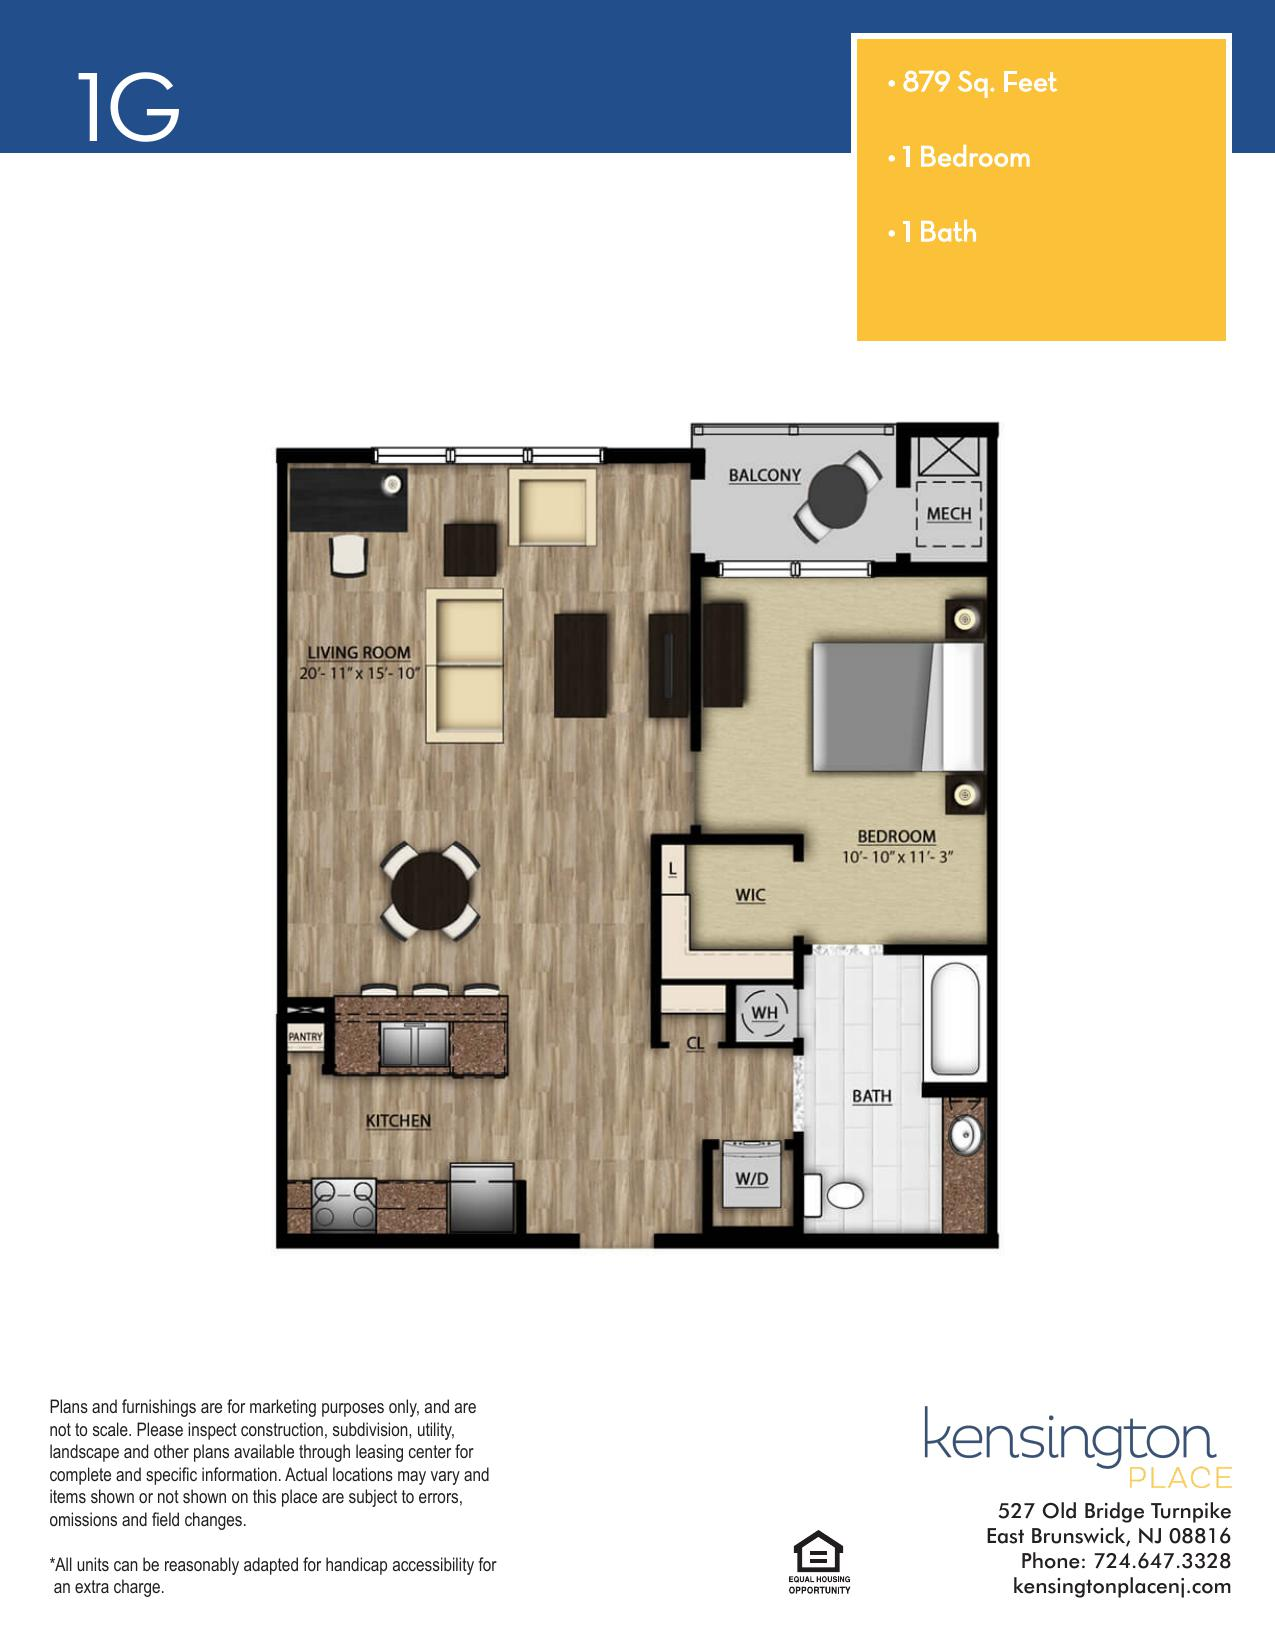 Kensington Place Apartment Floor Plan 1G